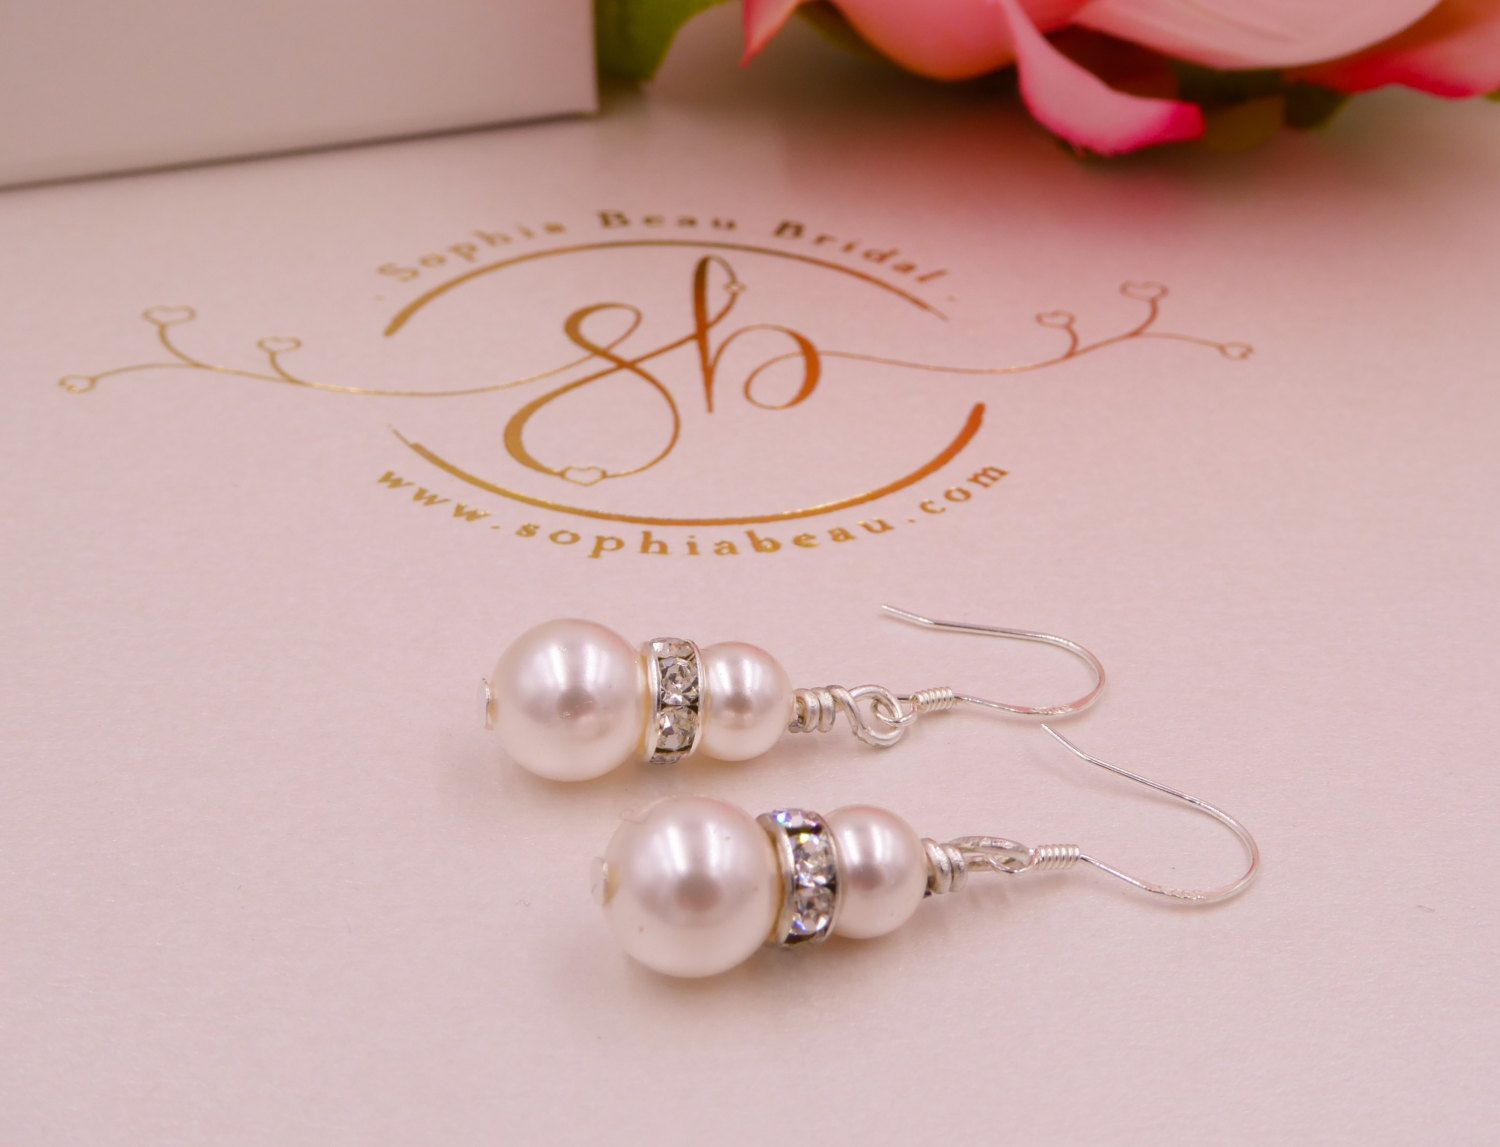 Pearl drop earrings with diamante rondelles Sterling Silver brides, mother of the bride, Made to your colour and size by SophiabeauBridal on Etsy